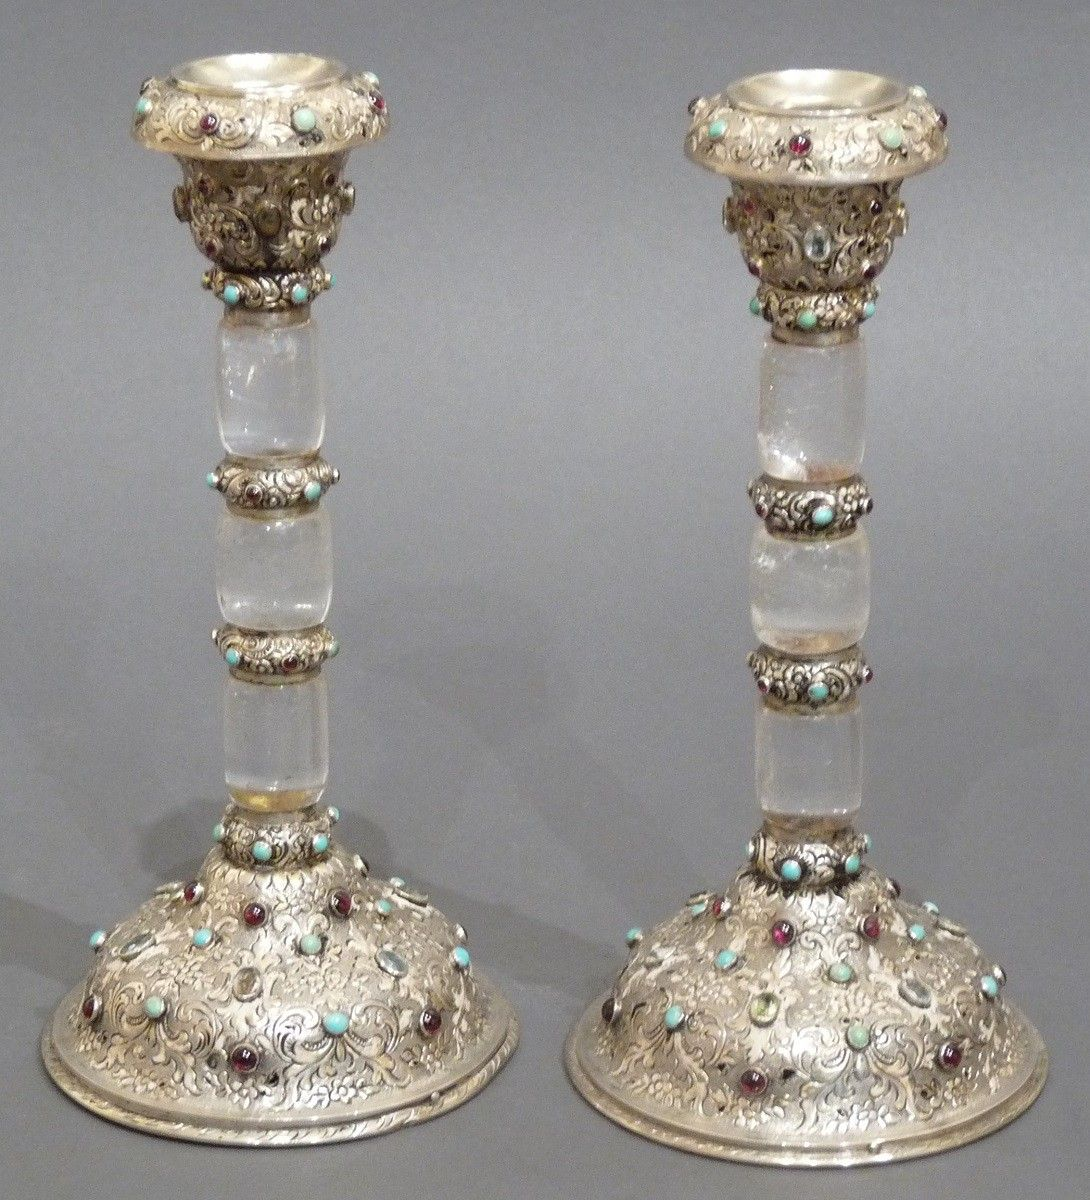 A Pair of Silver-Mounted & Gem Set Rock Crystal Candlesticks